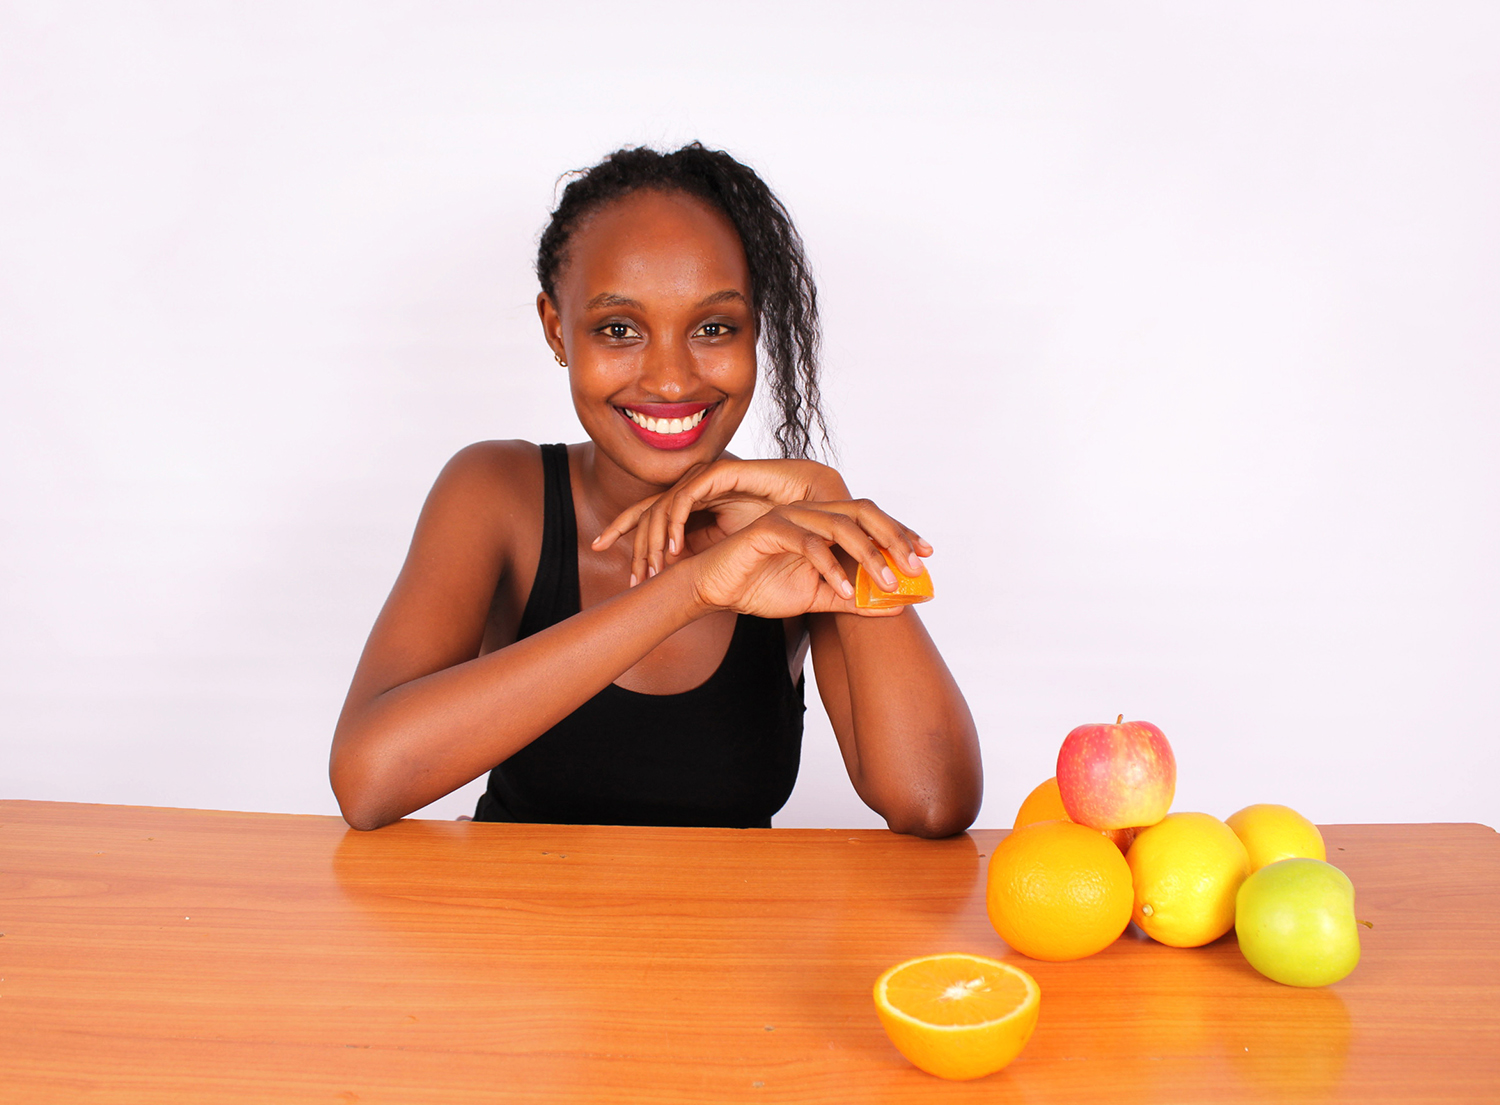 Healthy woman holding orange slice and fruits on table